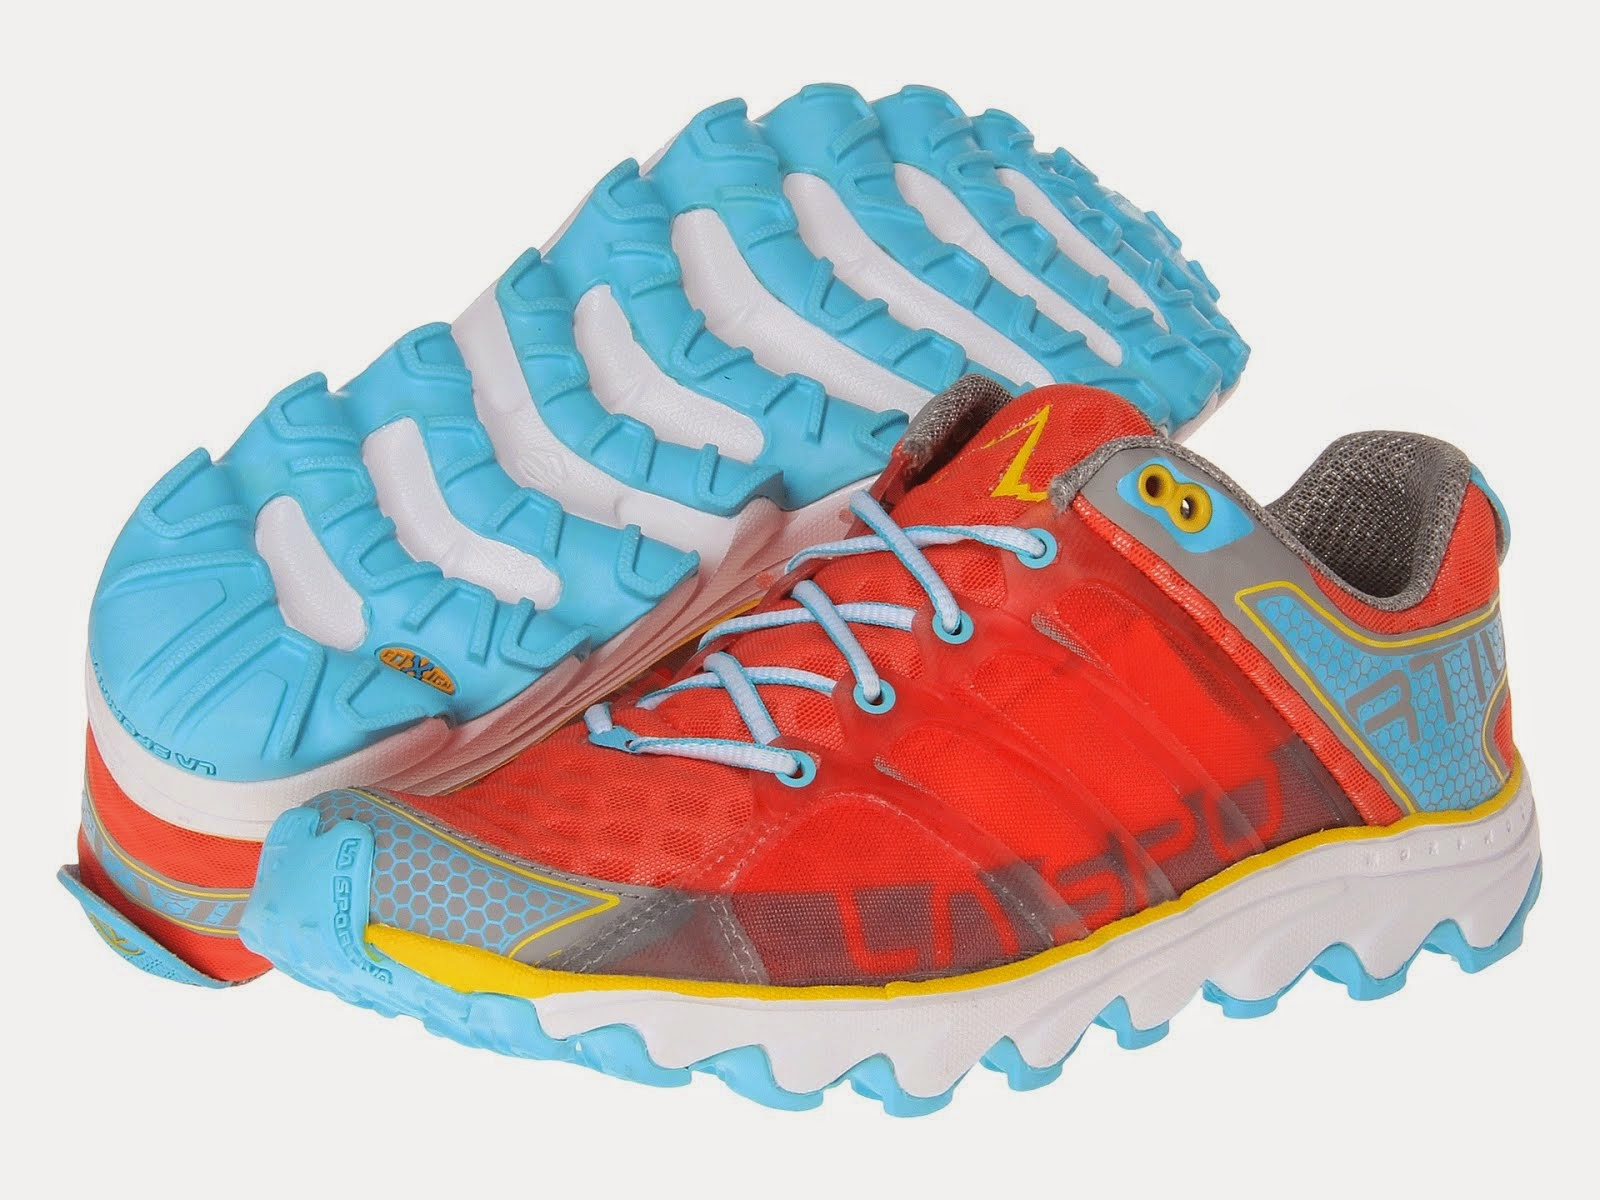 My Trail Running Shoe: